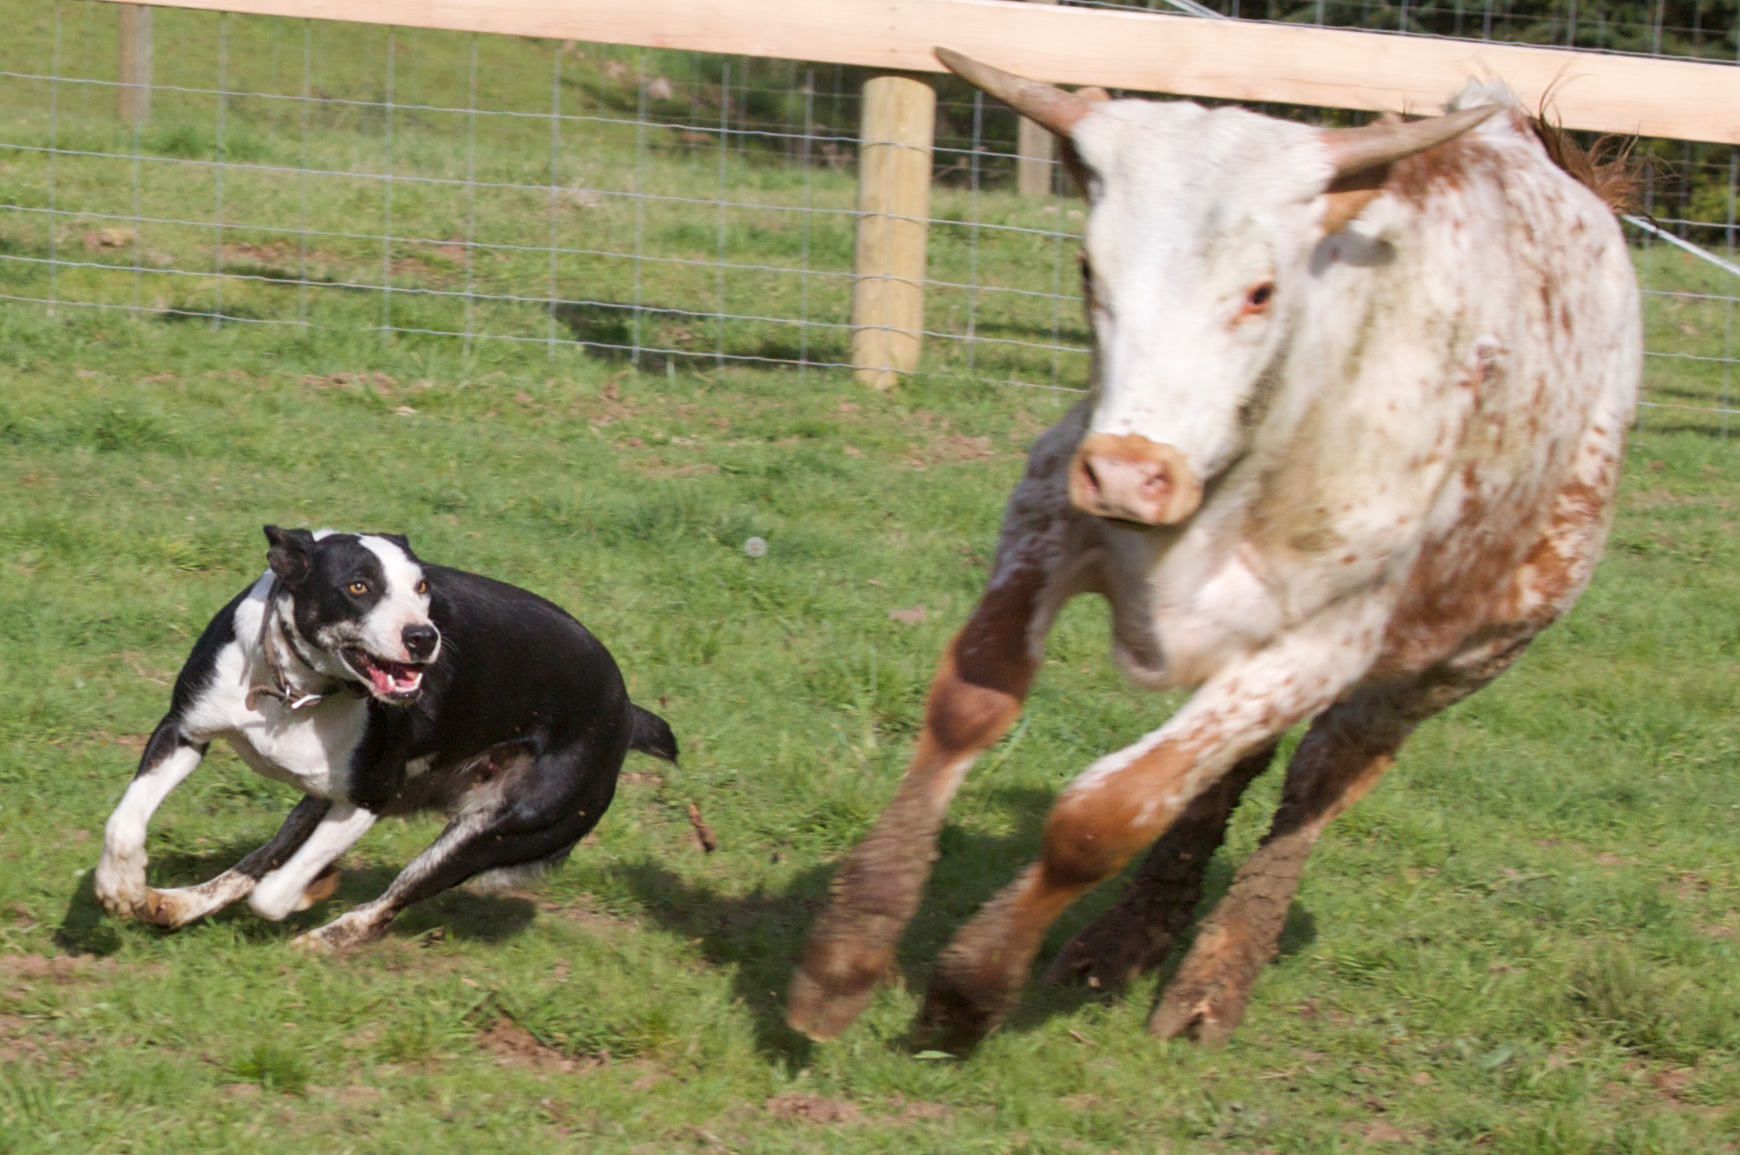 Hanging Tree Cow Dog Sales Services And Training Cattle Services